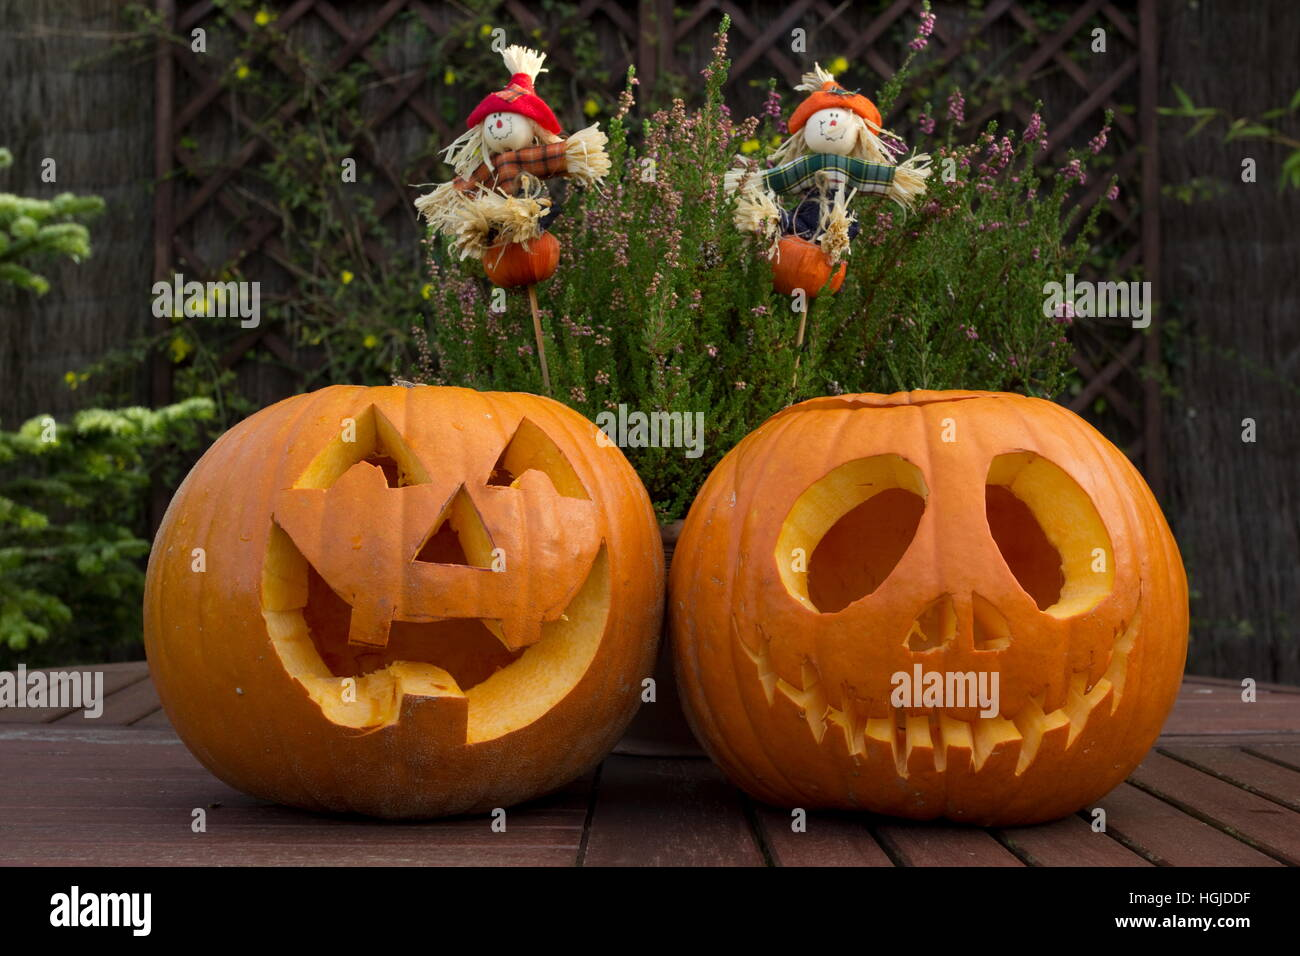 Carved pumpkin faces at Halloween Stock Photo, Royalty Free Image ...